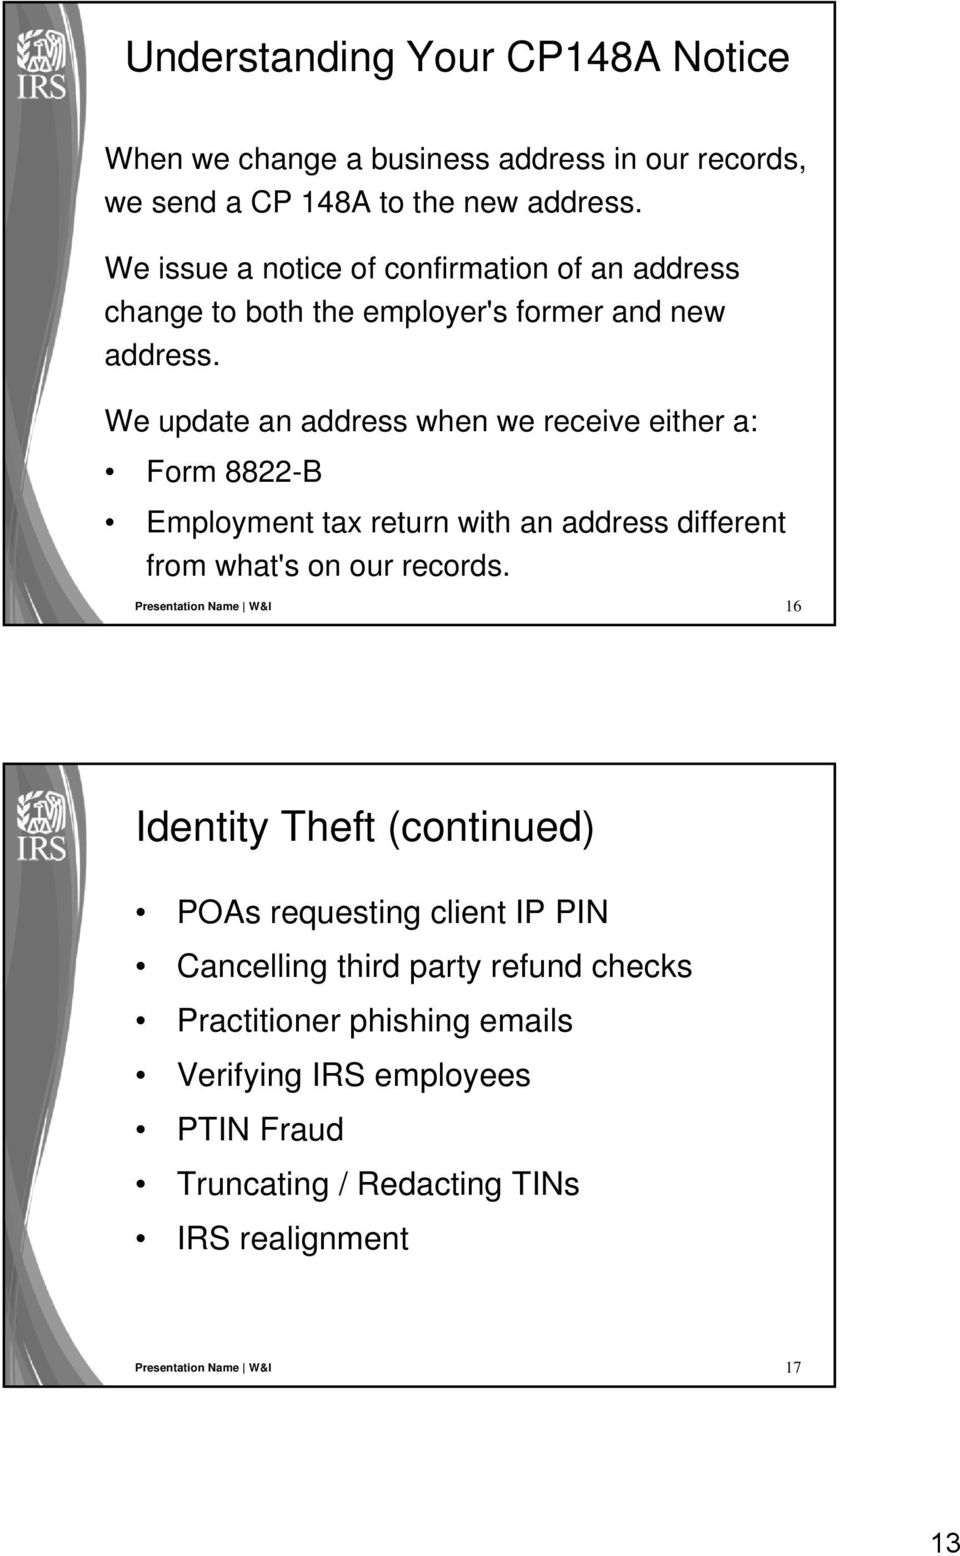 Tax-Related Identity Theft: IRS Efforts to Assist Victims and Combat ...